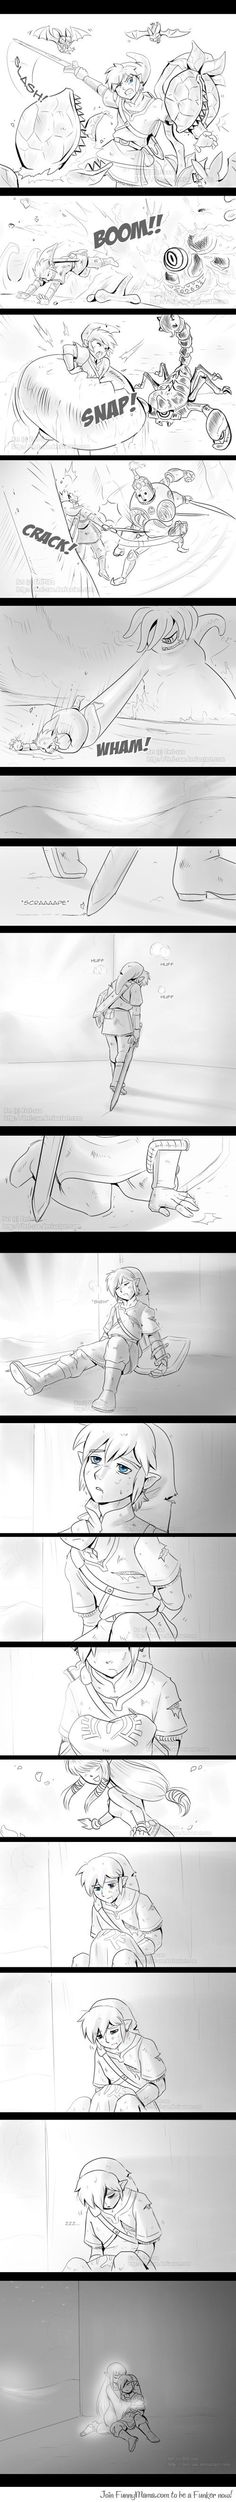 Link's reason to fight